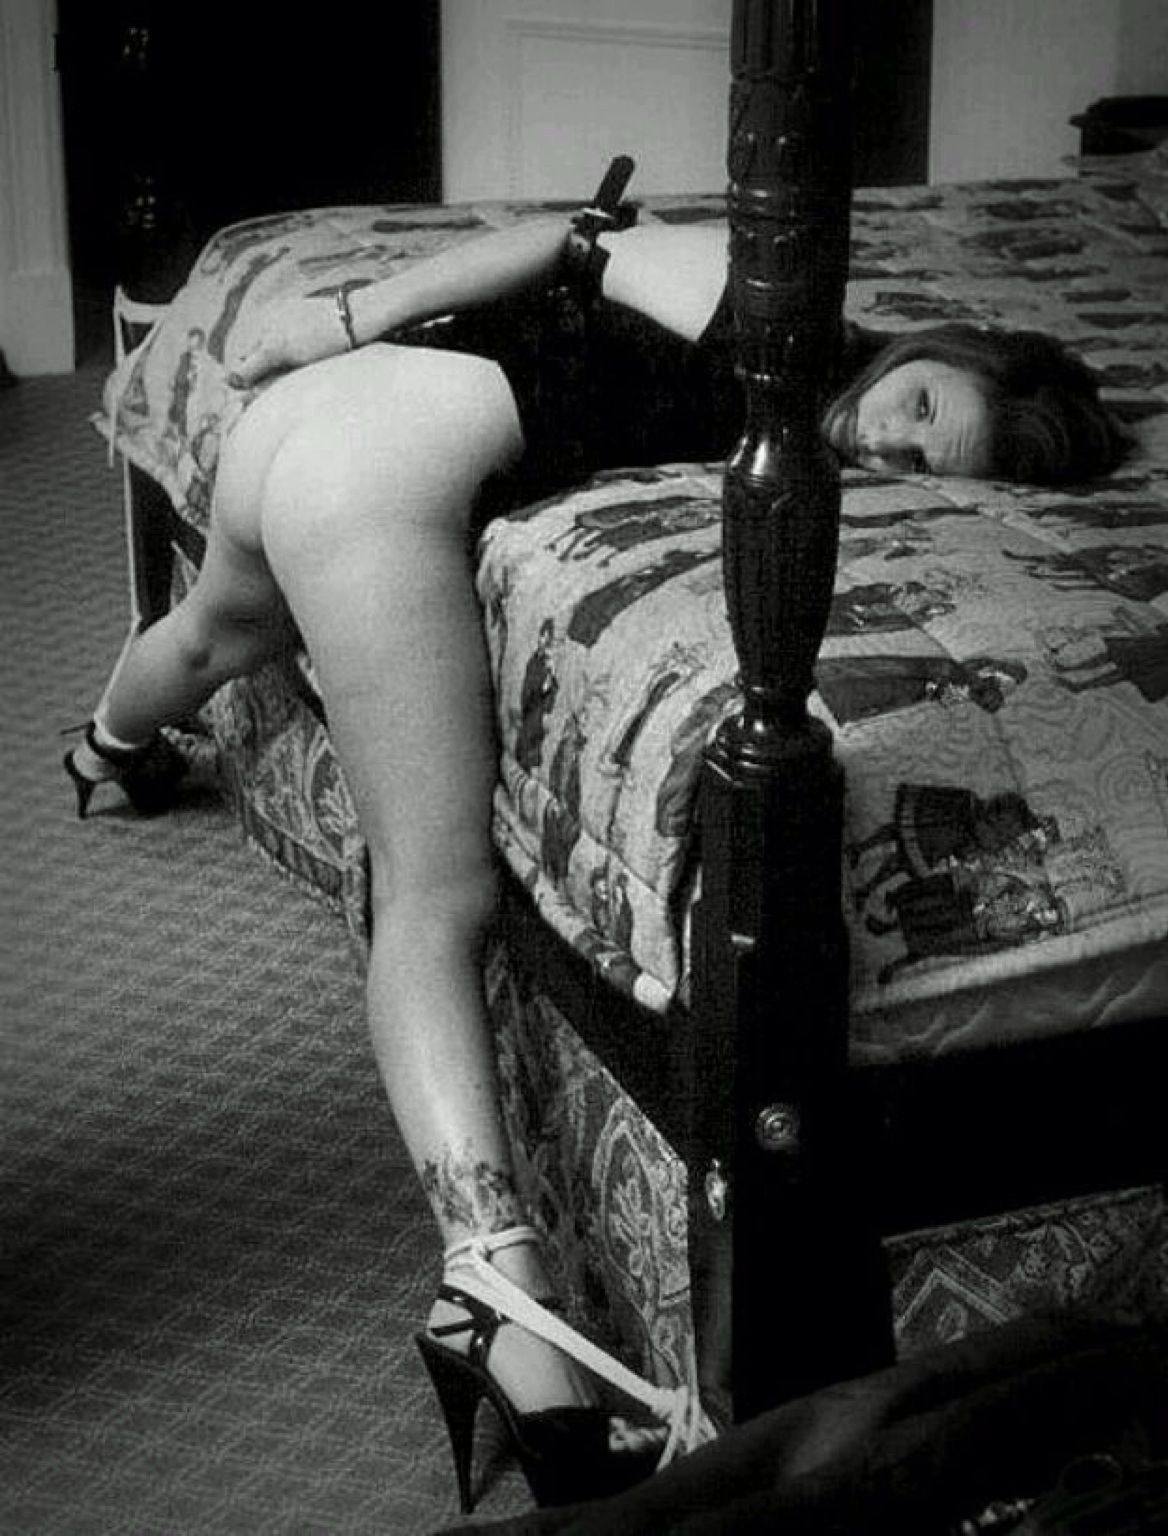 pin by hoty to handle on bondage pinterest submissive submissive